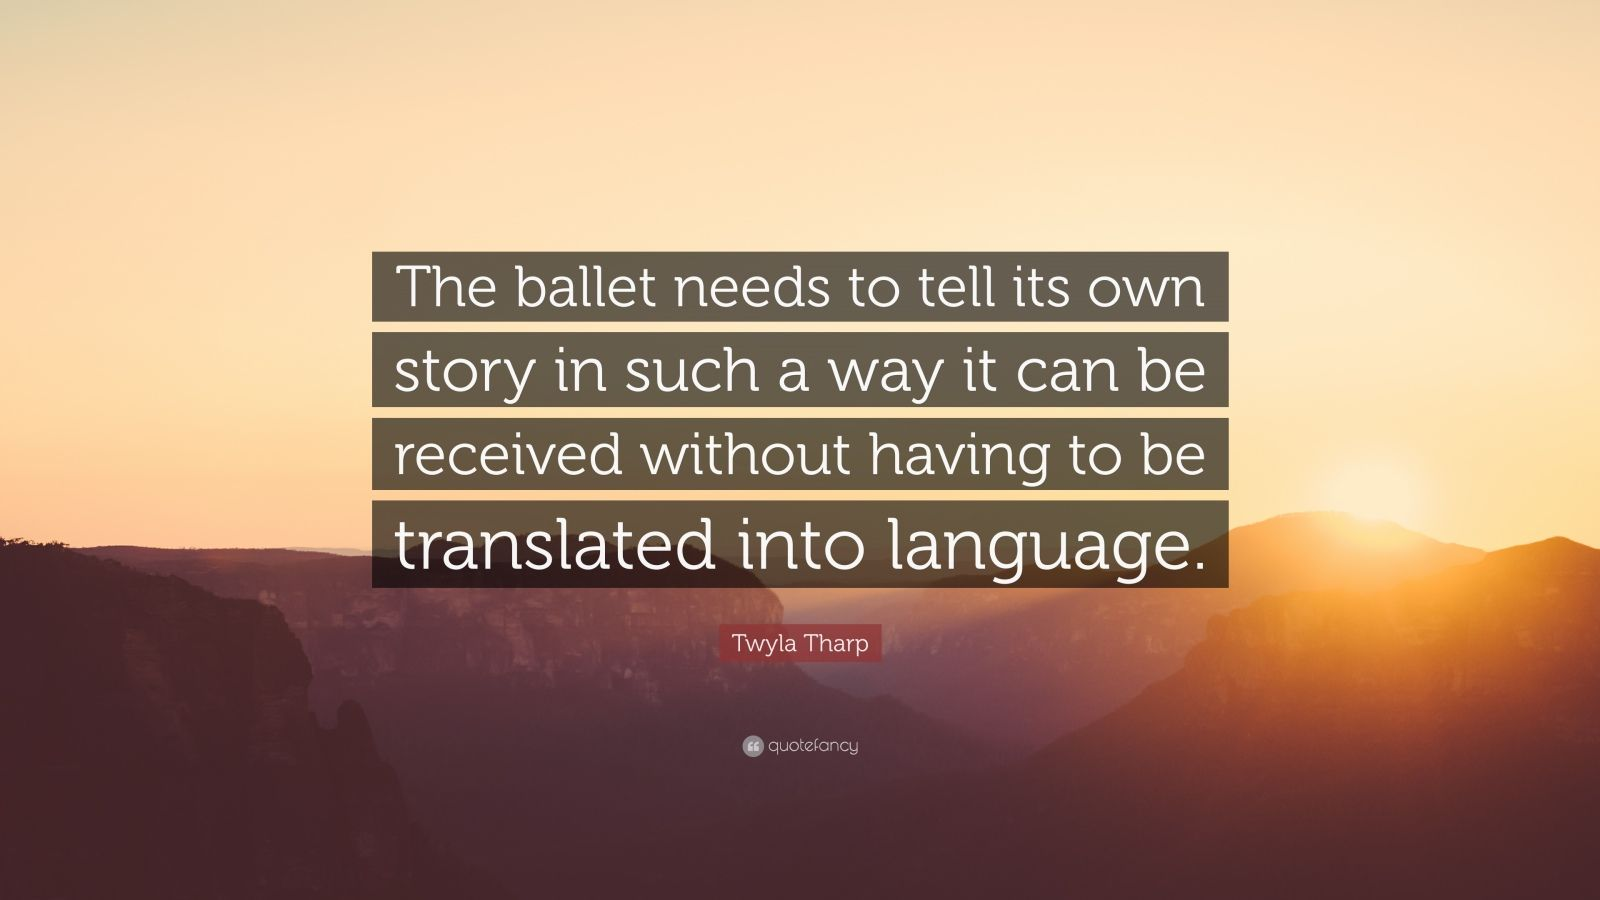 """Twyla Tharp Quote: """"The ballet needs to tell its own story in such a way it can be received without having to be translated into language."""""""